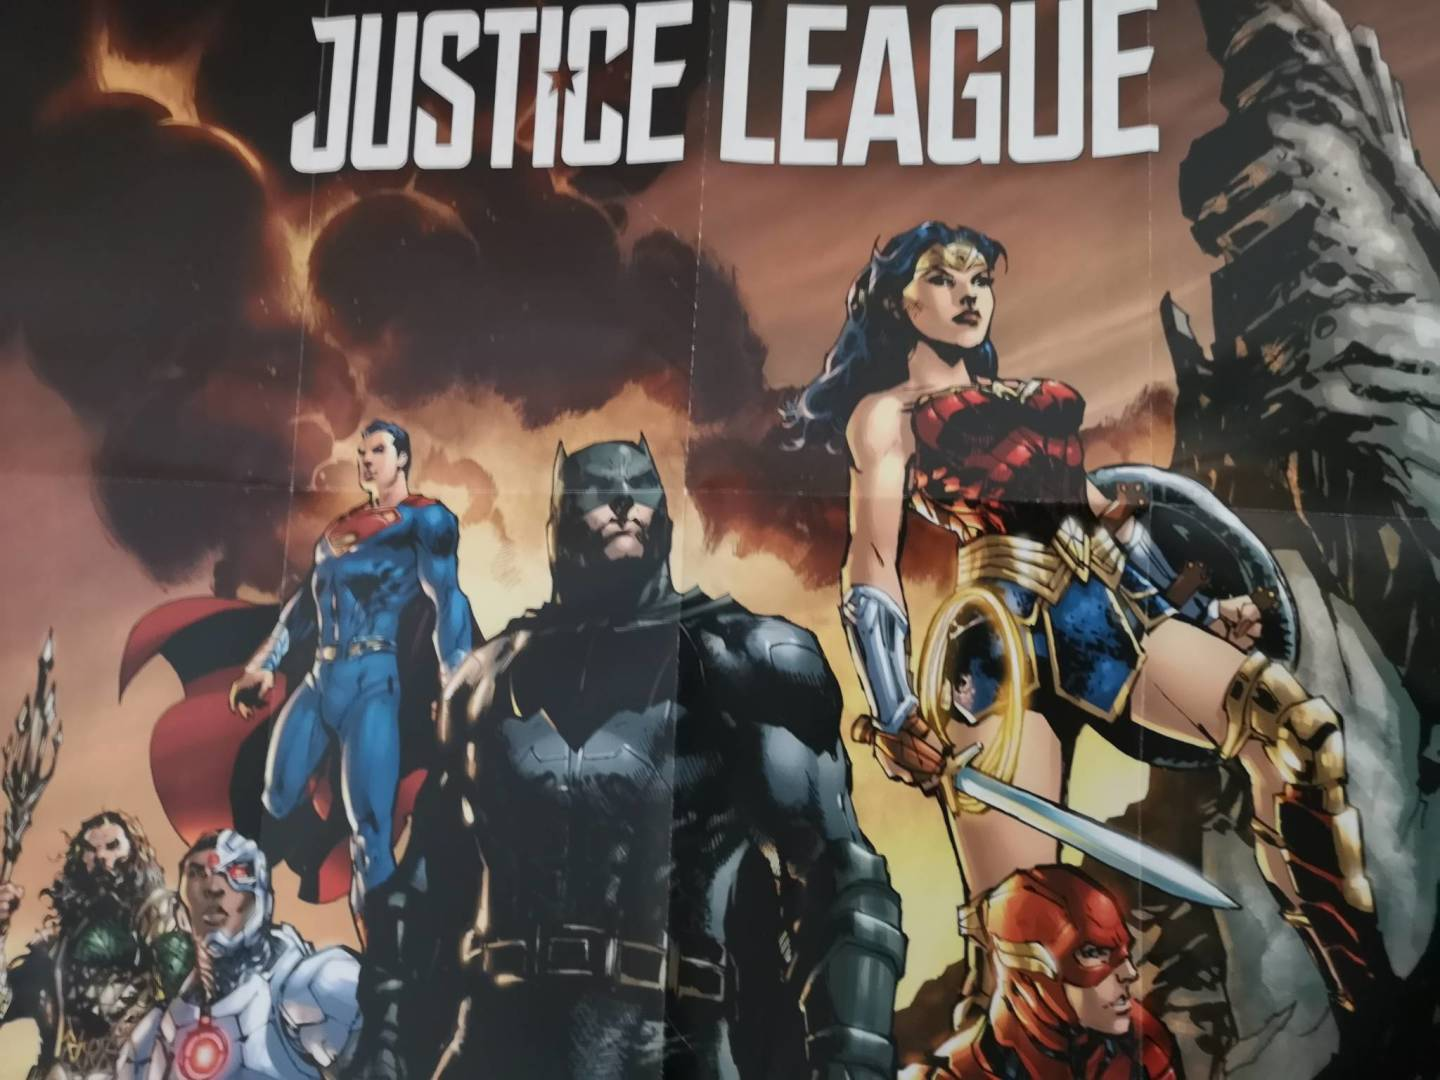 DC movie poster collection